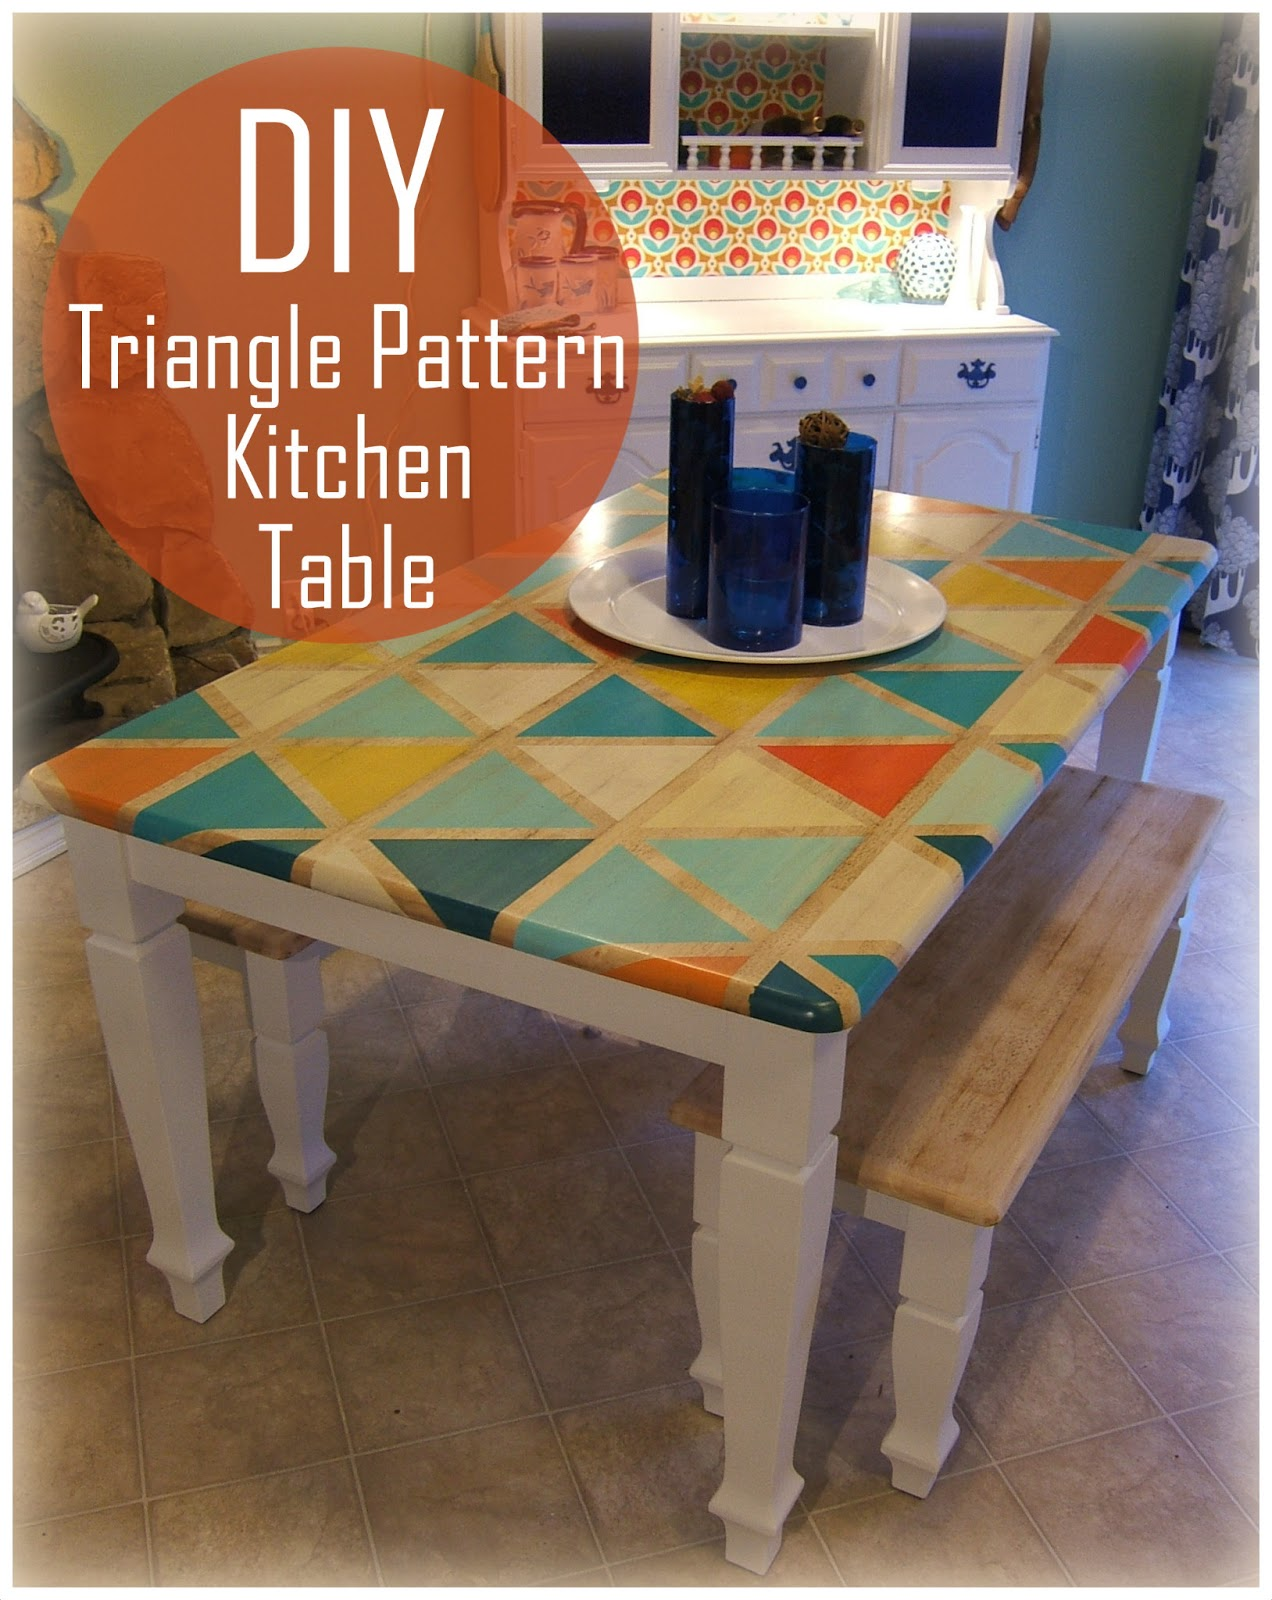 diy kitchen tables prep table how to triangle pattern tabletop